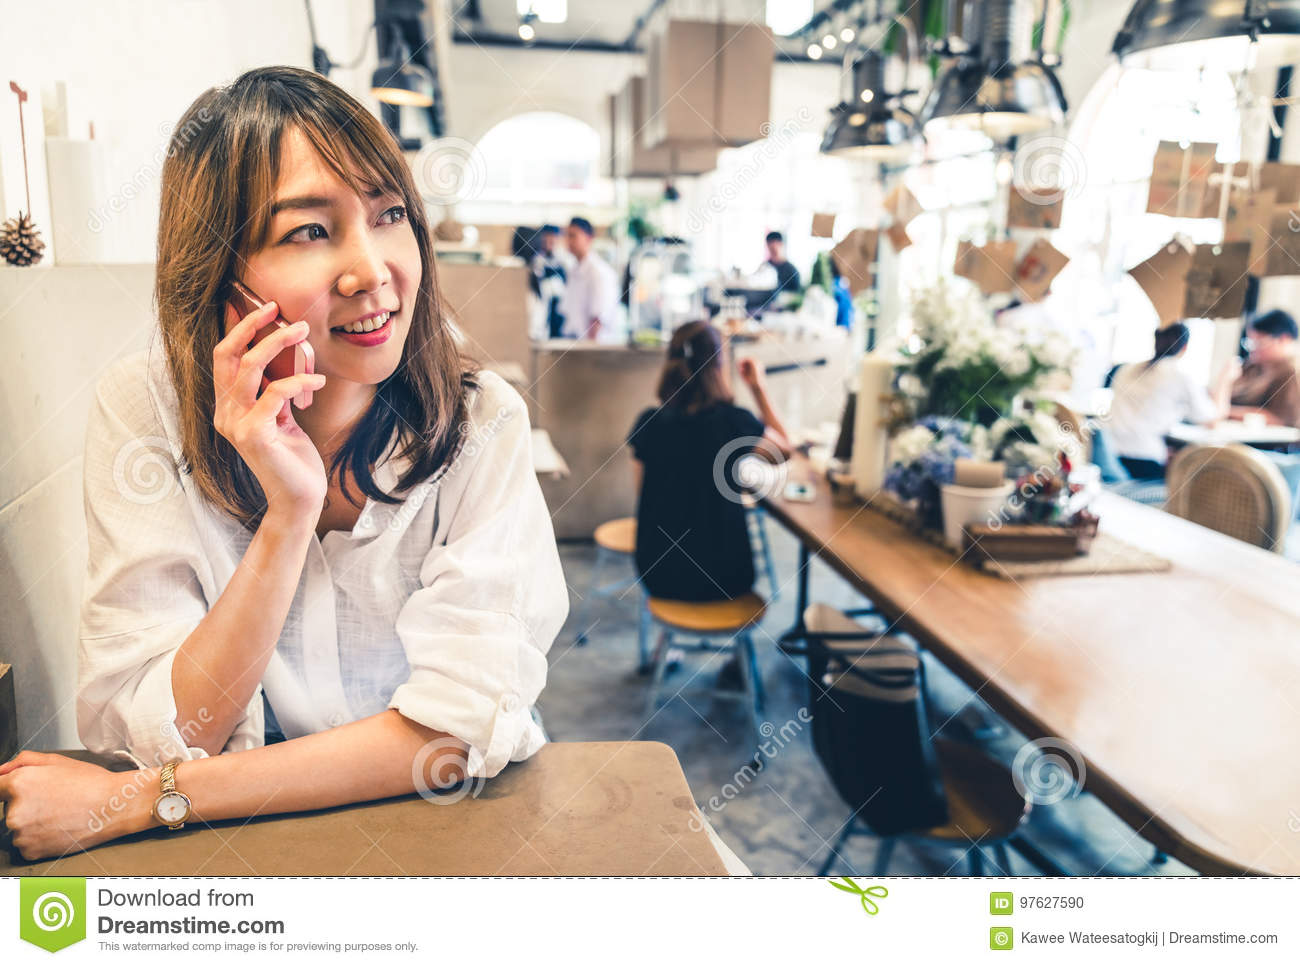 Young and beautiful Asian woman talking on mobile phone at coffee shop, communication or cafe casual lifestyle concept